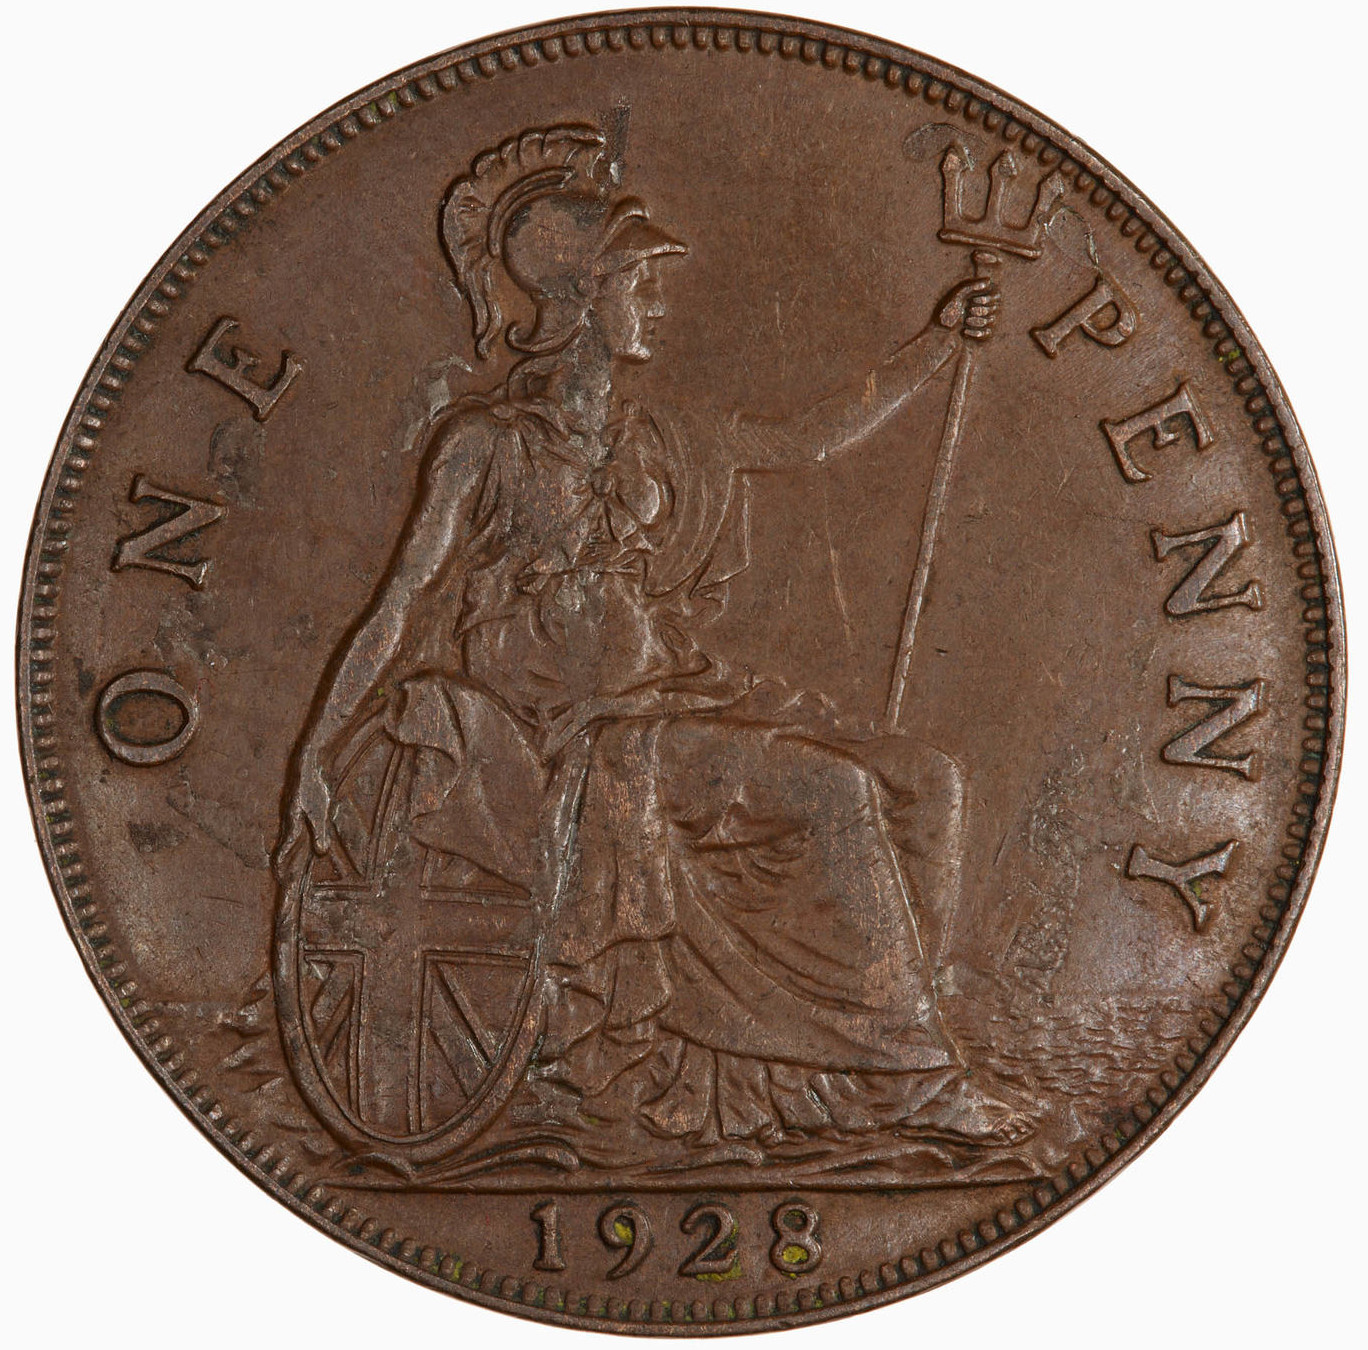 Penny 1928: Photo Coin - Penny, George V, Great Britain, 1928